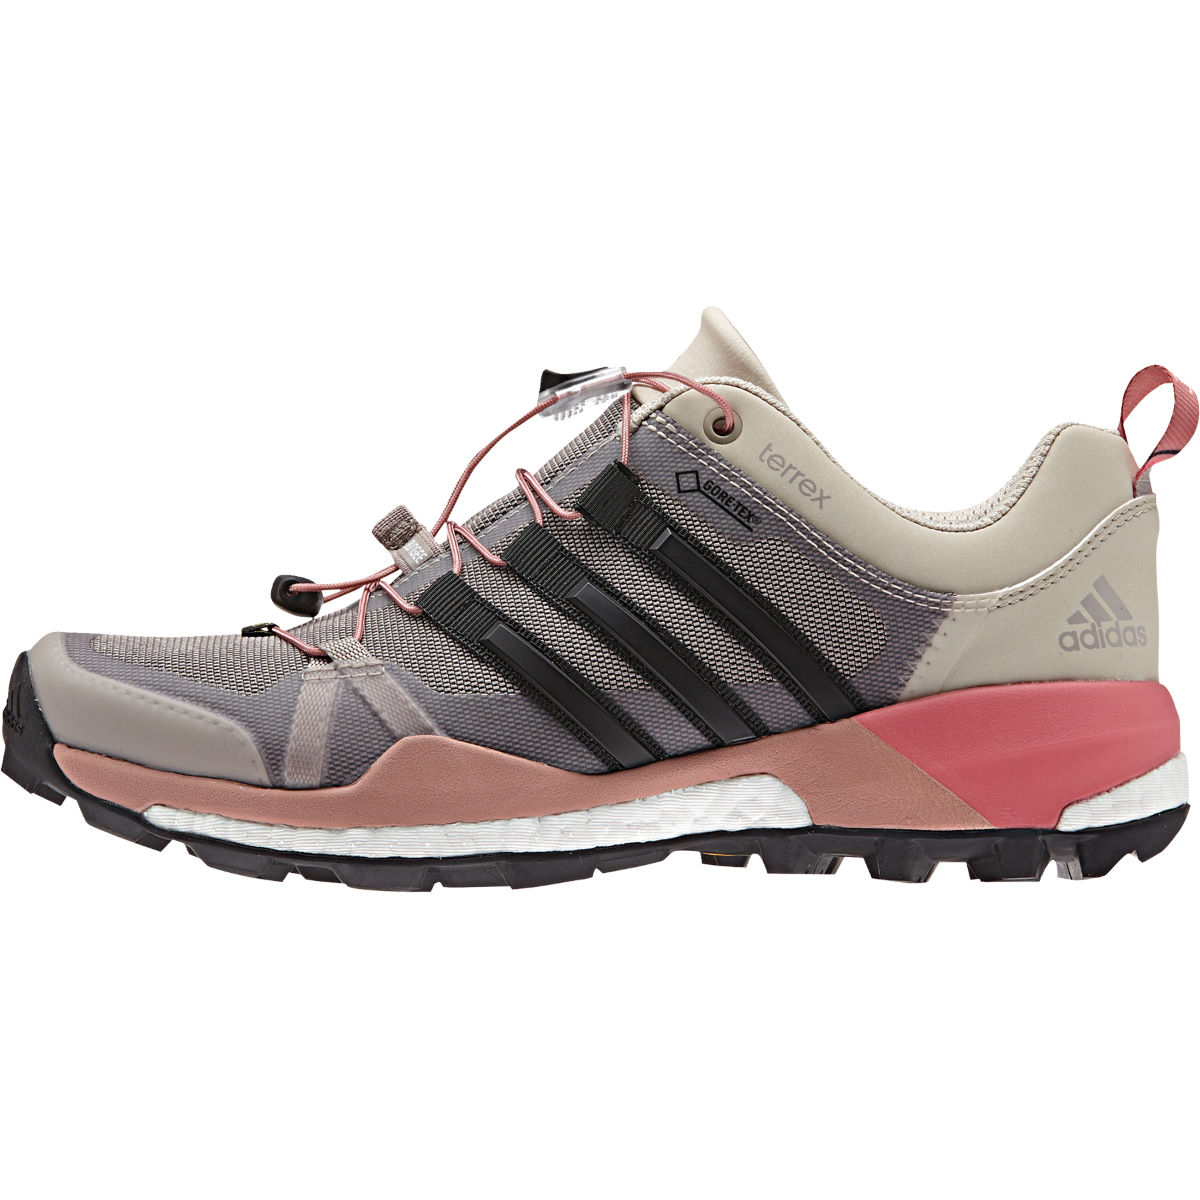 Adidas Terrex Fast X Low Gtx Hiking Shoes